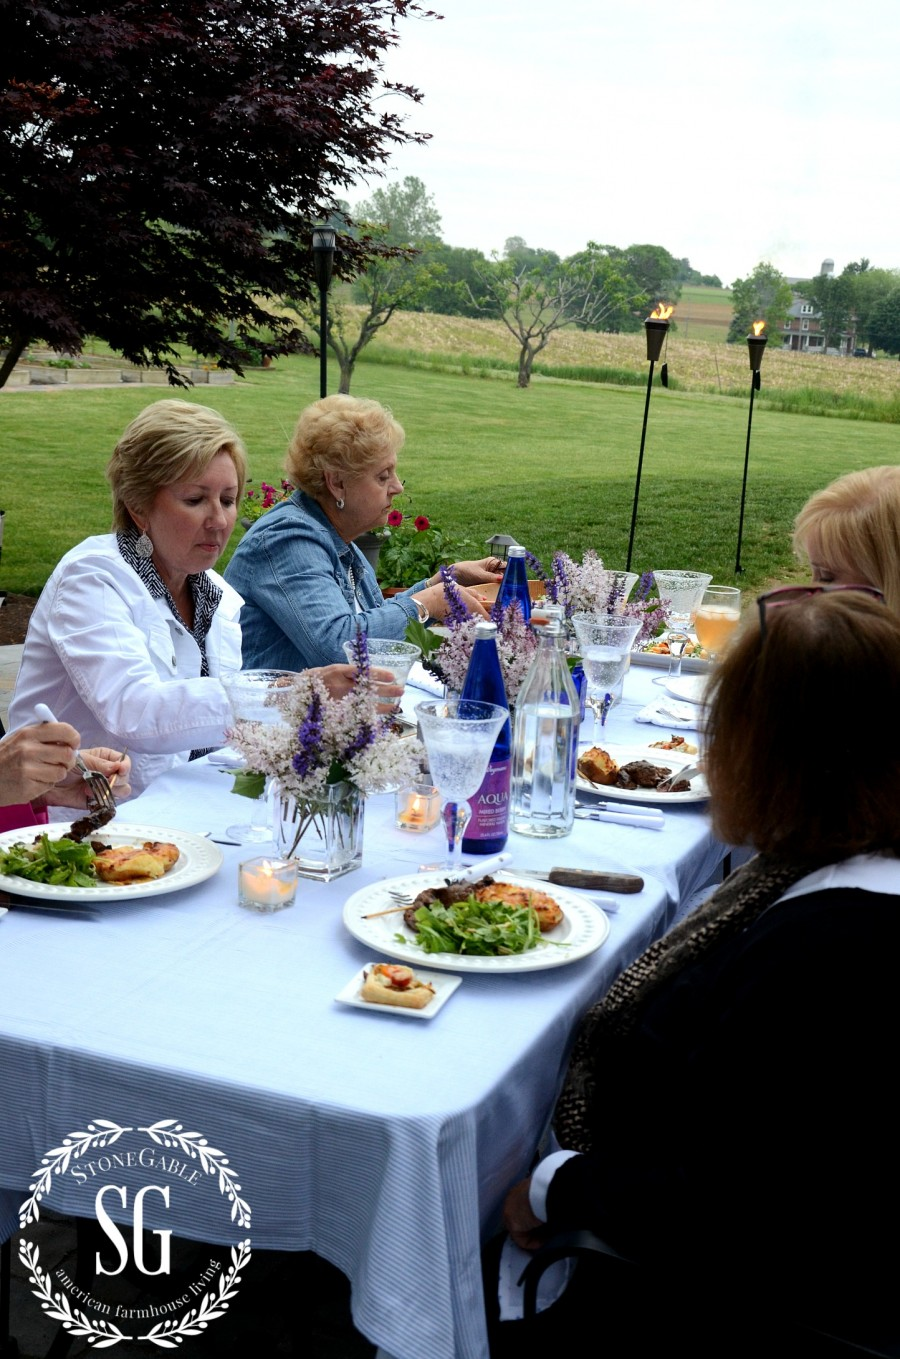 10 TIPS FOR THROWING A SUMMER PARTY THE EASY WAY- Plan an easy menu-stonegableblog.com